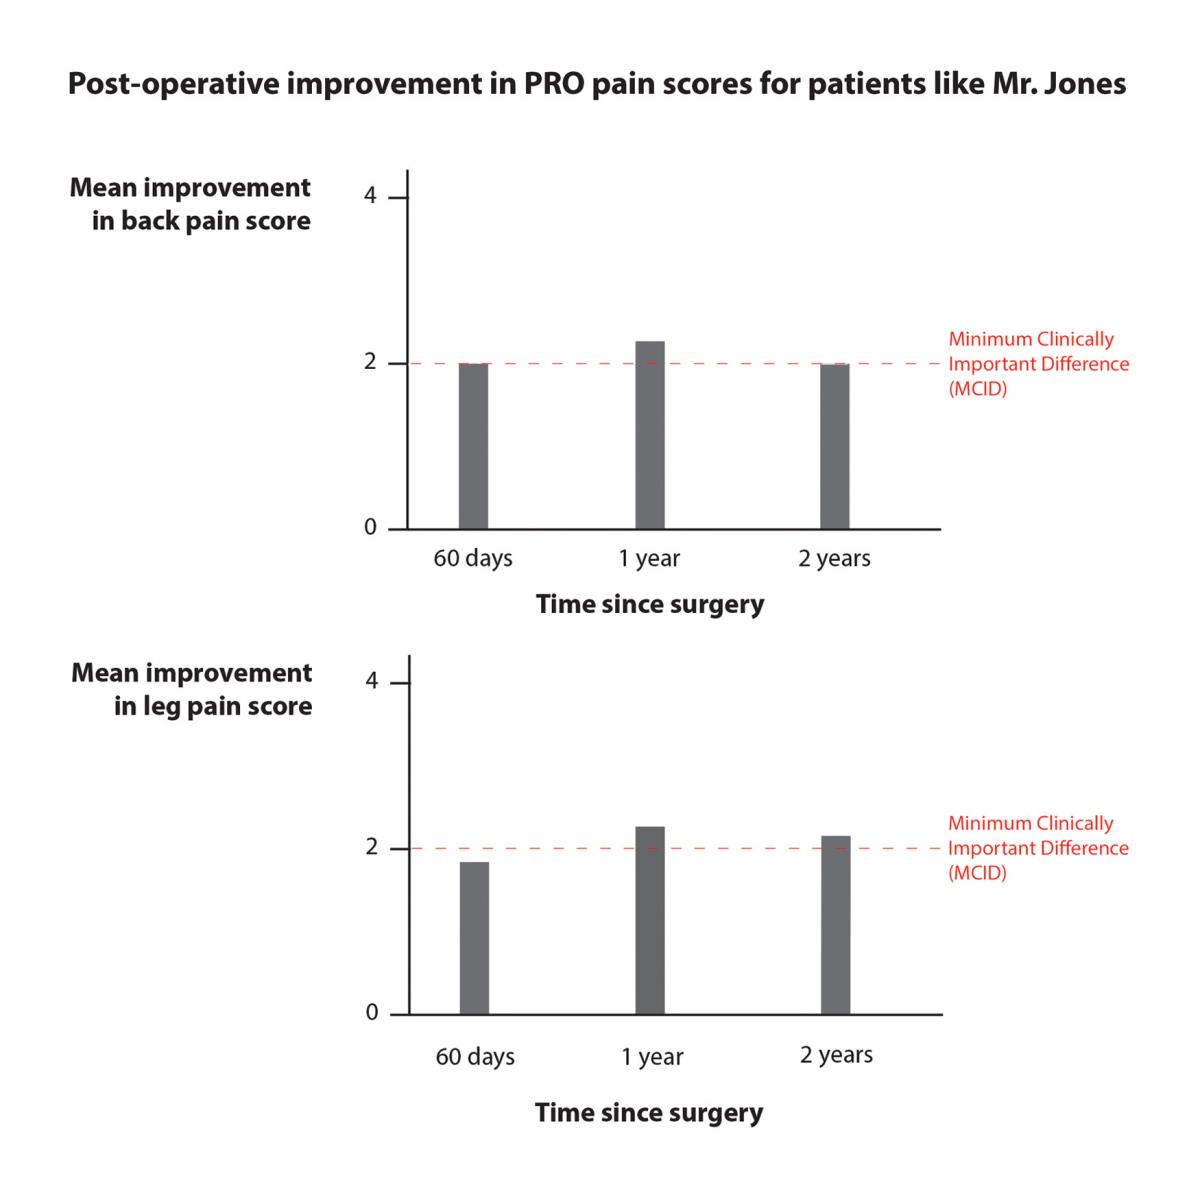 Graphic showing mean improvement in back and leg pain scores on bar charts, with MCID indicated on both.